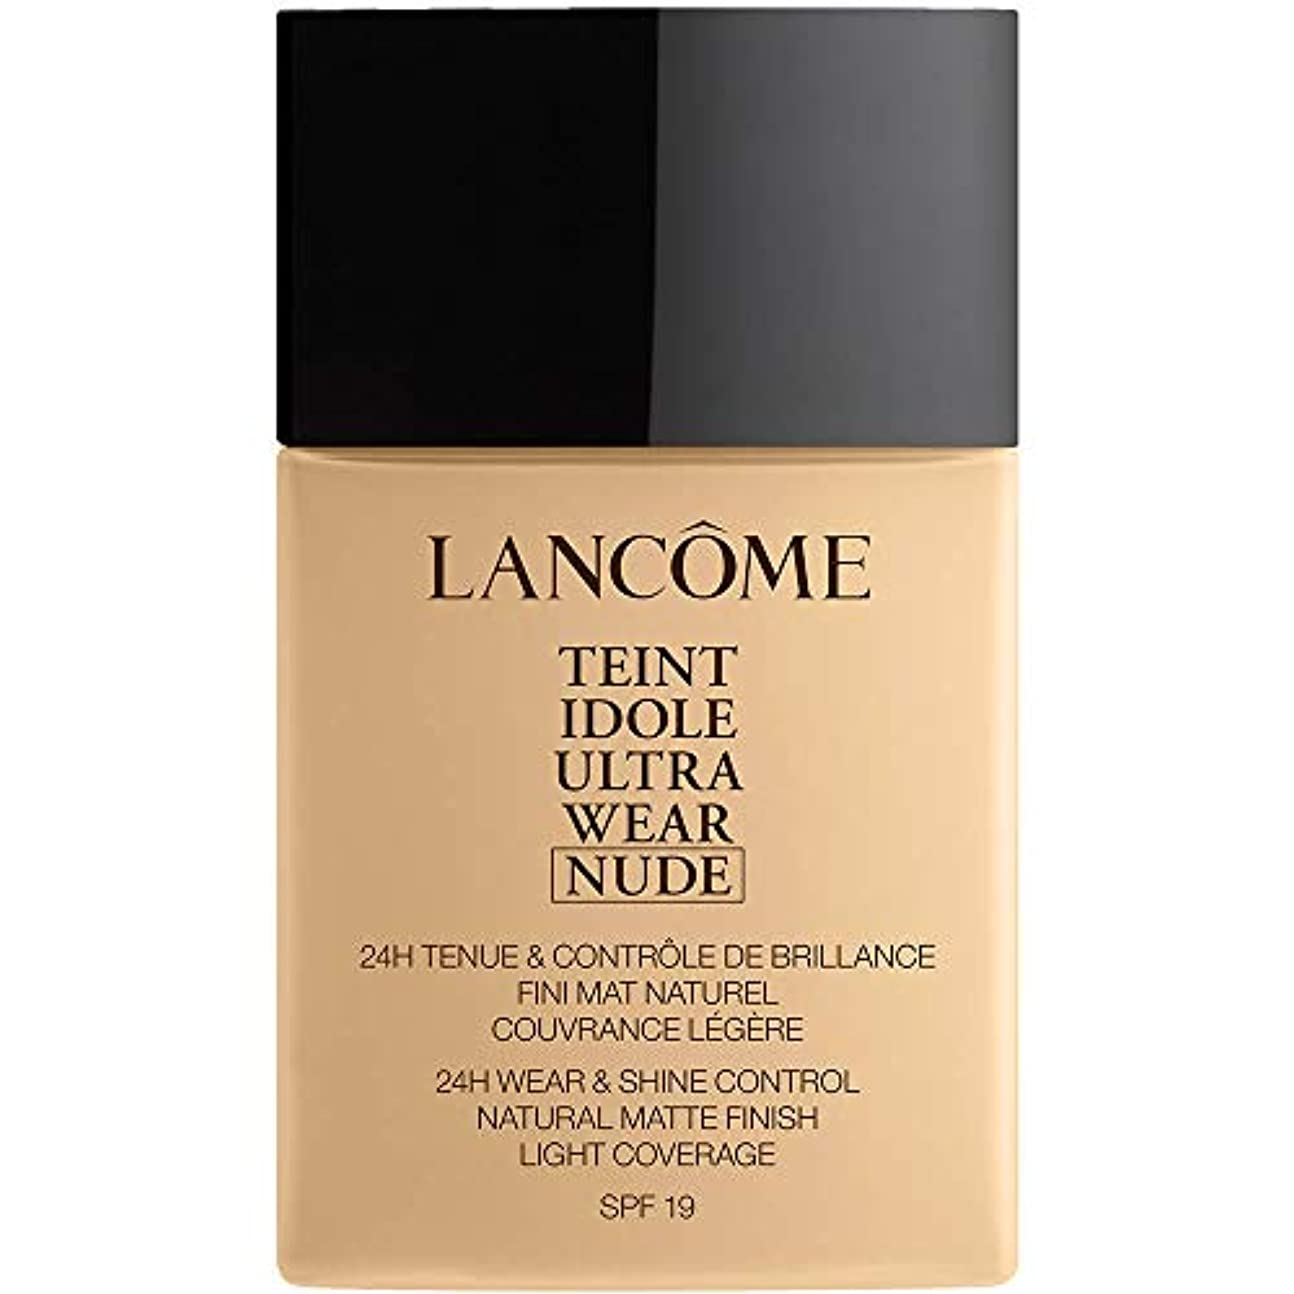 に対応するエンジン読者ランコム Teint Idole Ultra Wear Nude Foundation SPF19 - # 010 Beige Porcelaine 40ml/1.3oz並行輸入品